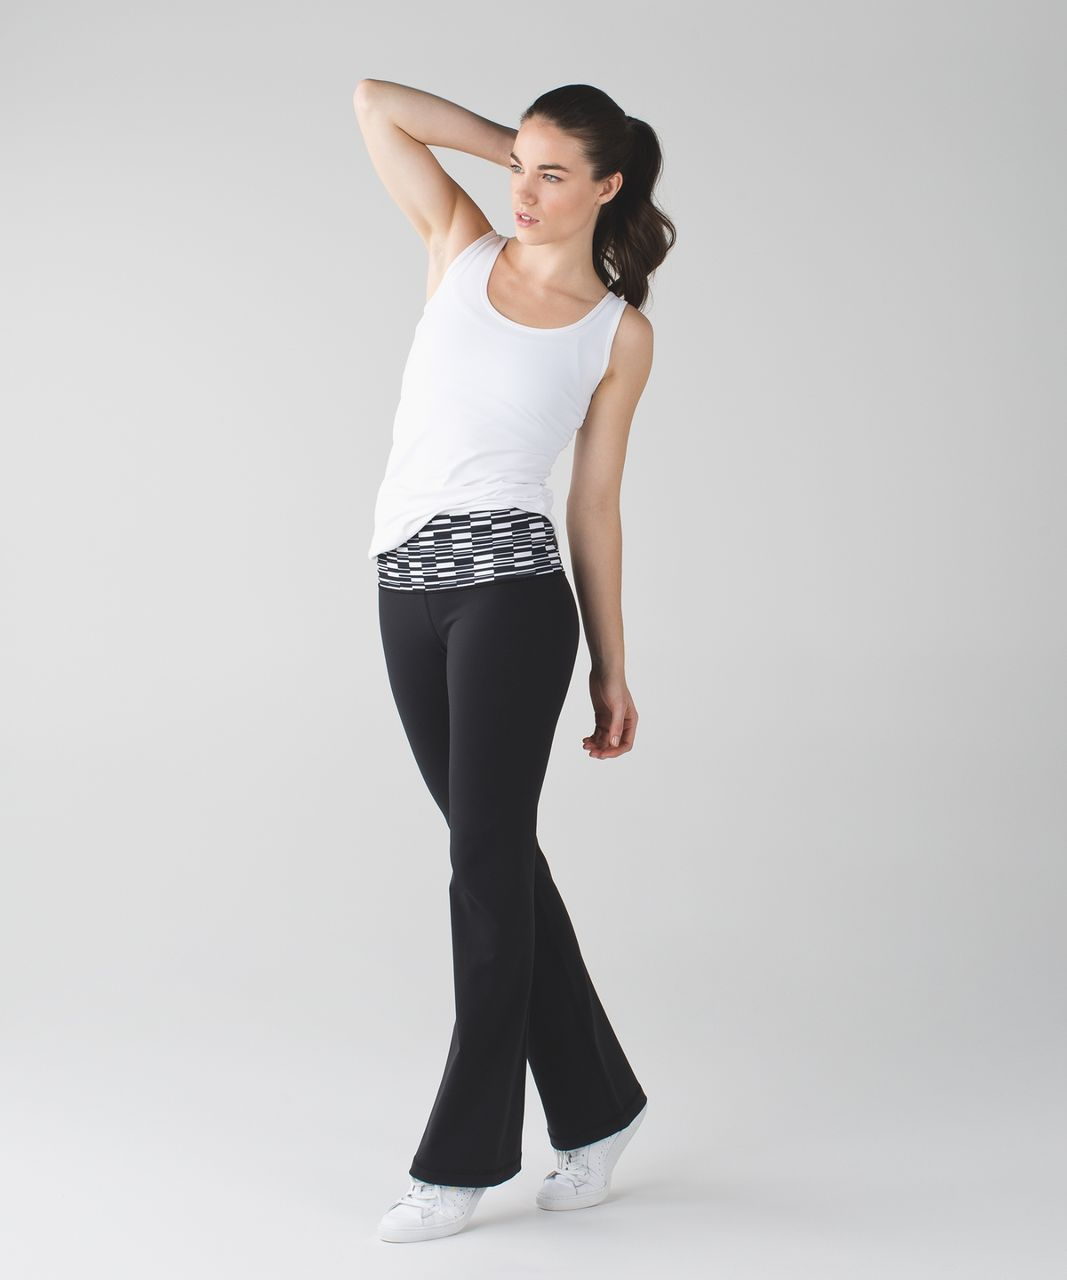 Lululemon Groove Pant III (Regular) *Full-On Luon - Black / Ying Yang Stripe White Black